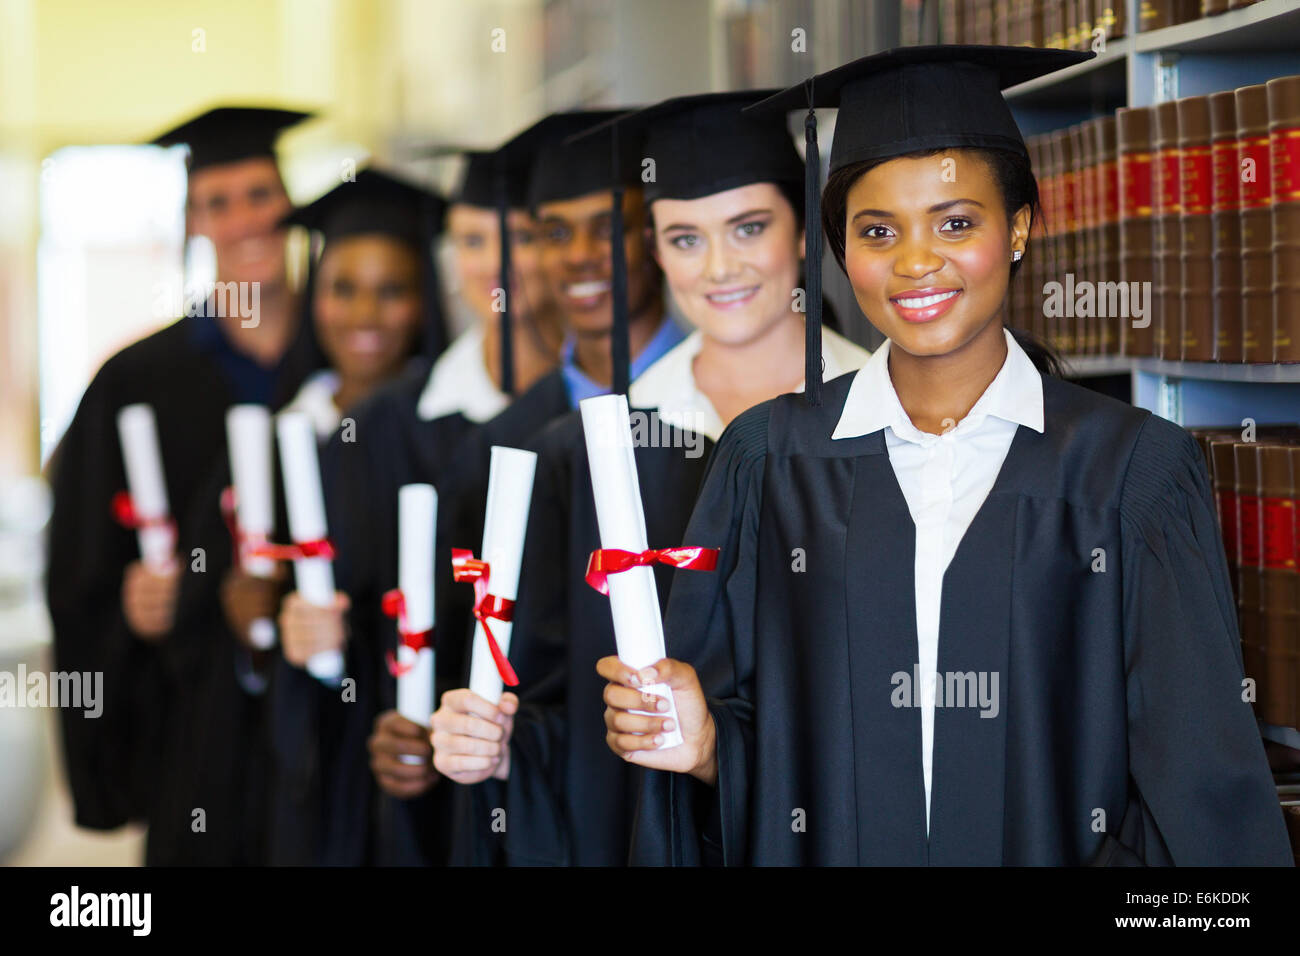 group of happy graduates holding diploma in library stock photo  group of happy graduates holding diploma in library